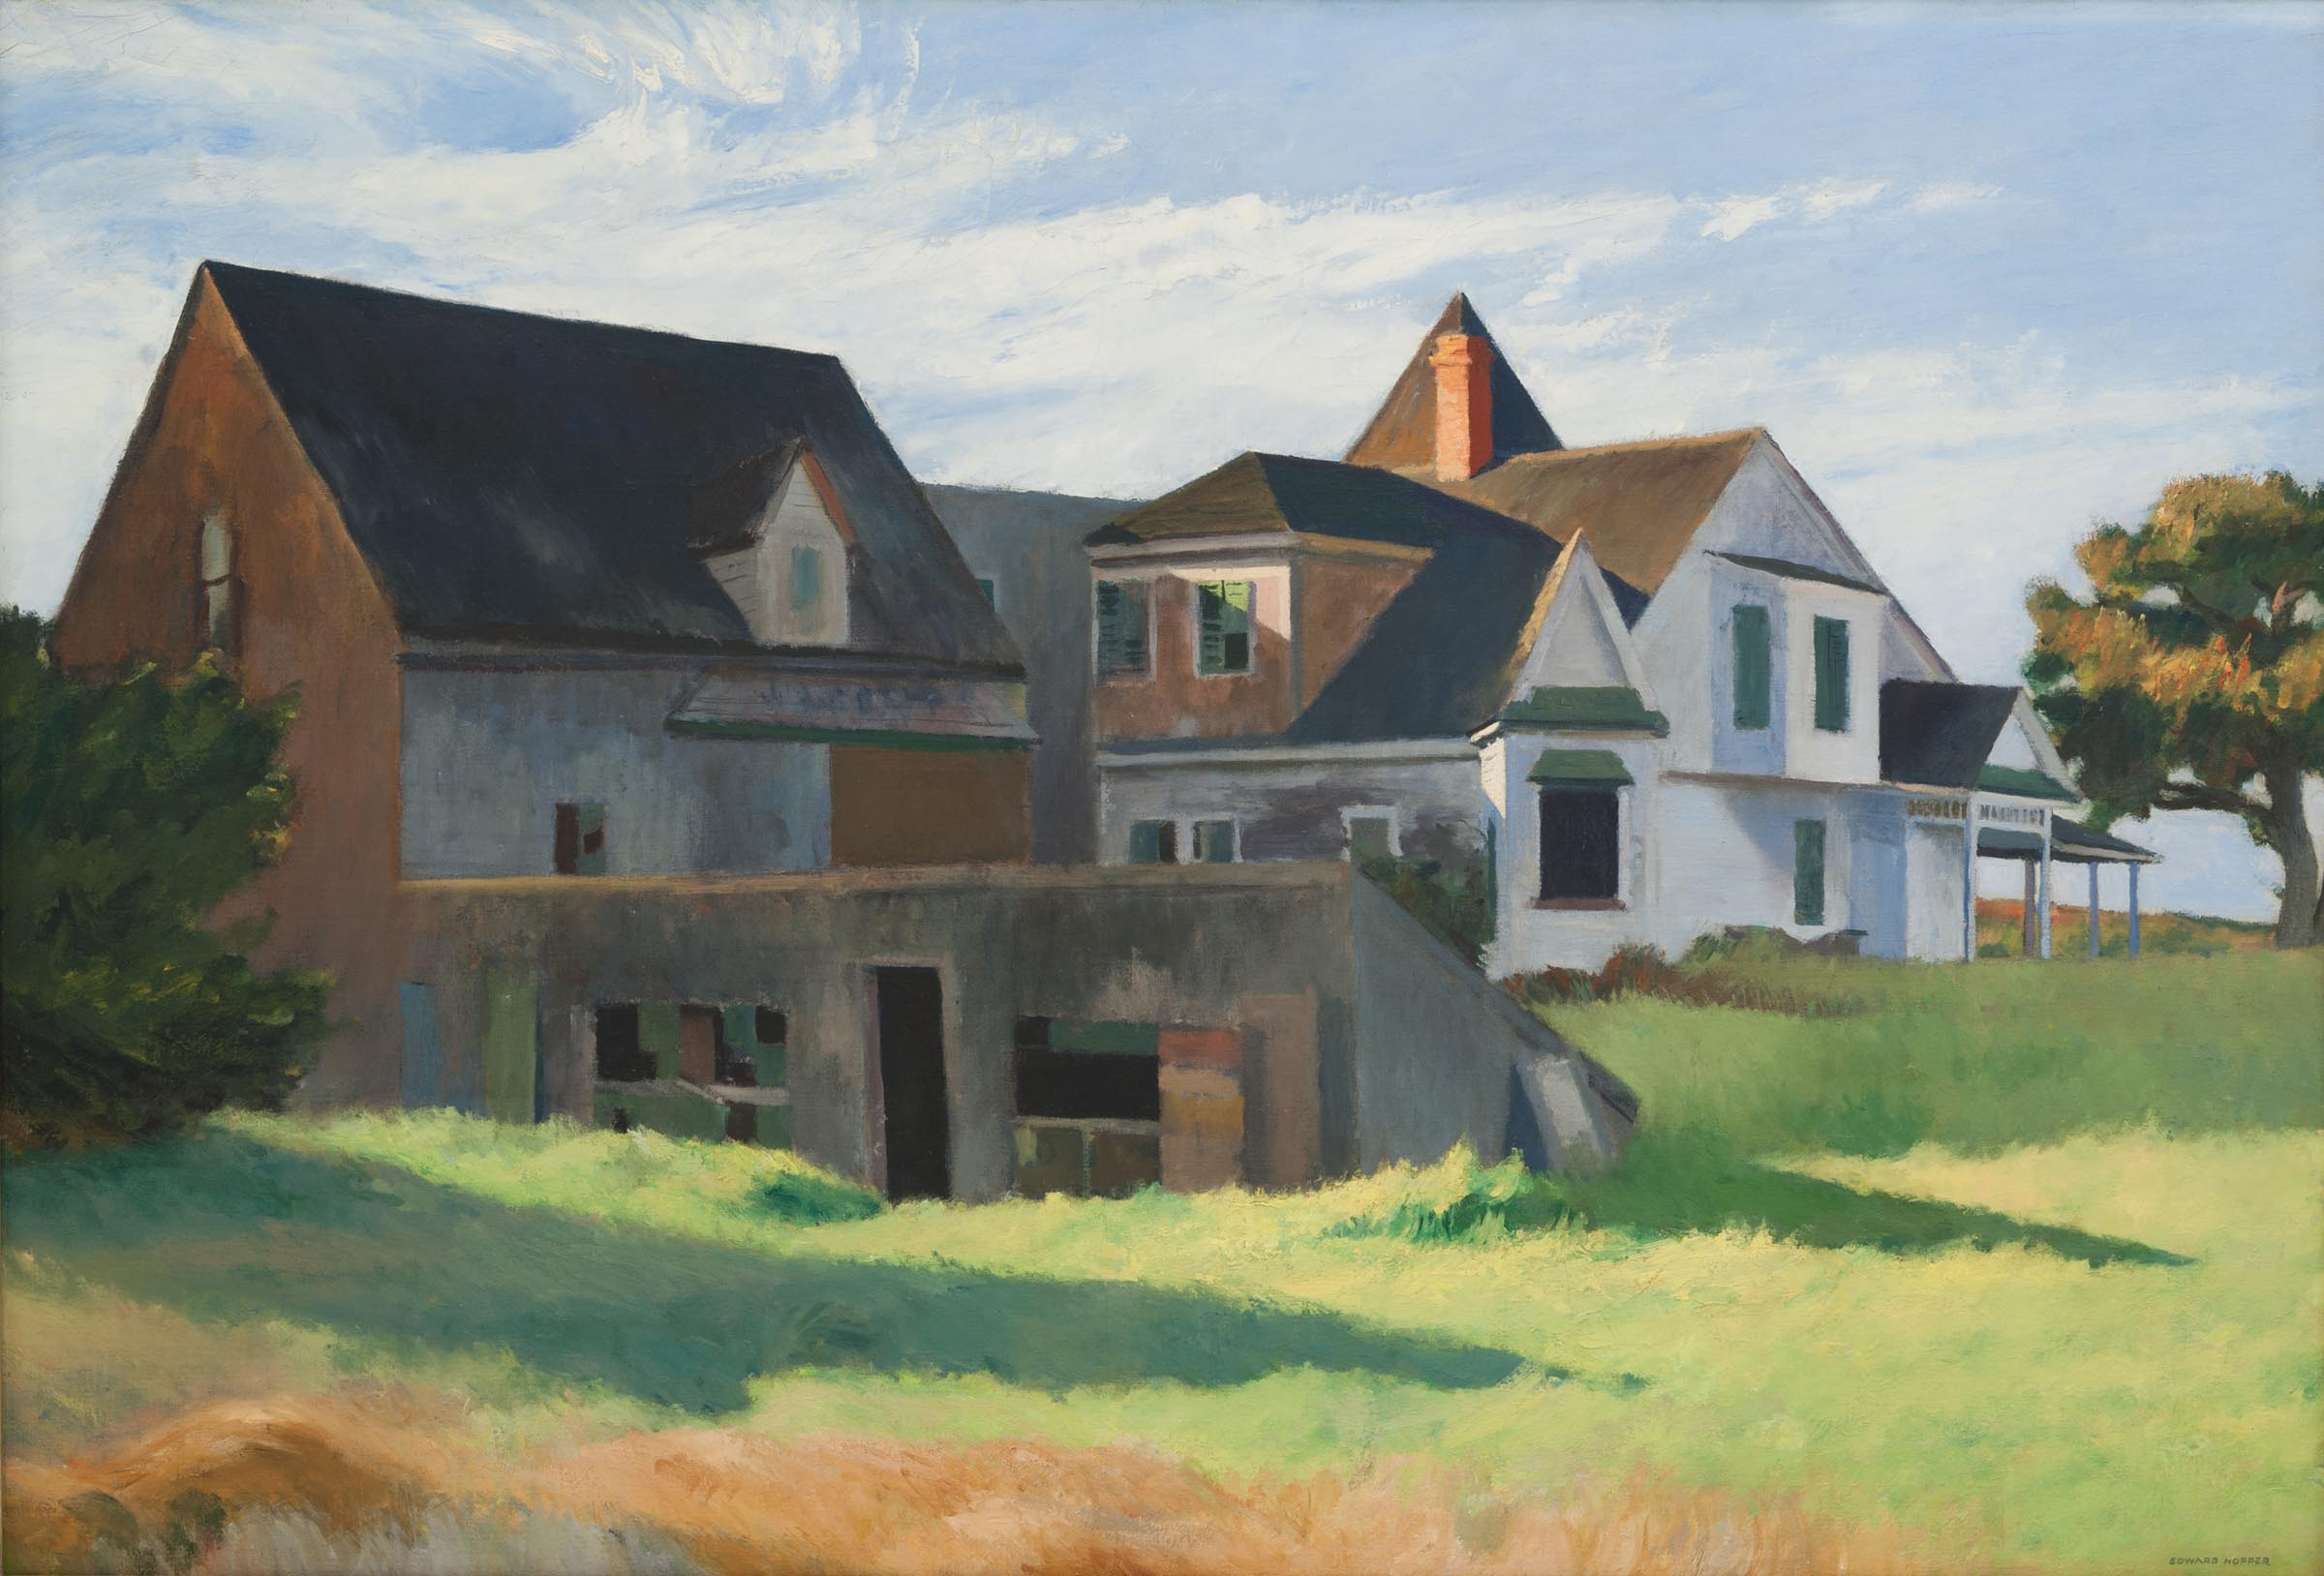 Edward Hopper, Cape Cod Afternoon, 1936. Courtesy of Carnegie Museum of Art.